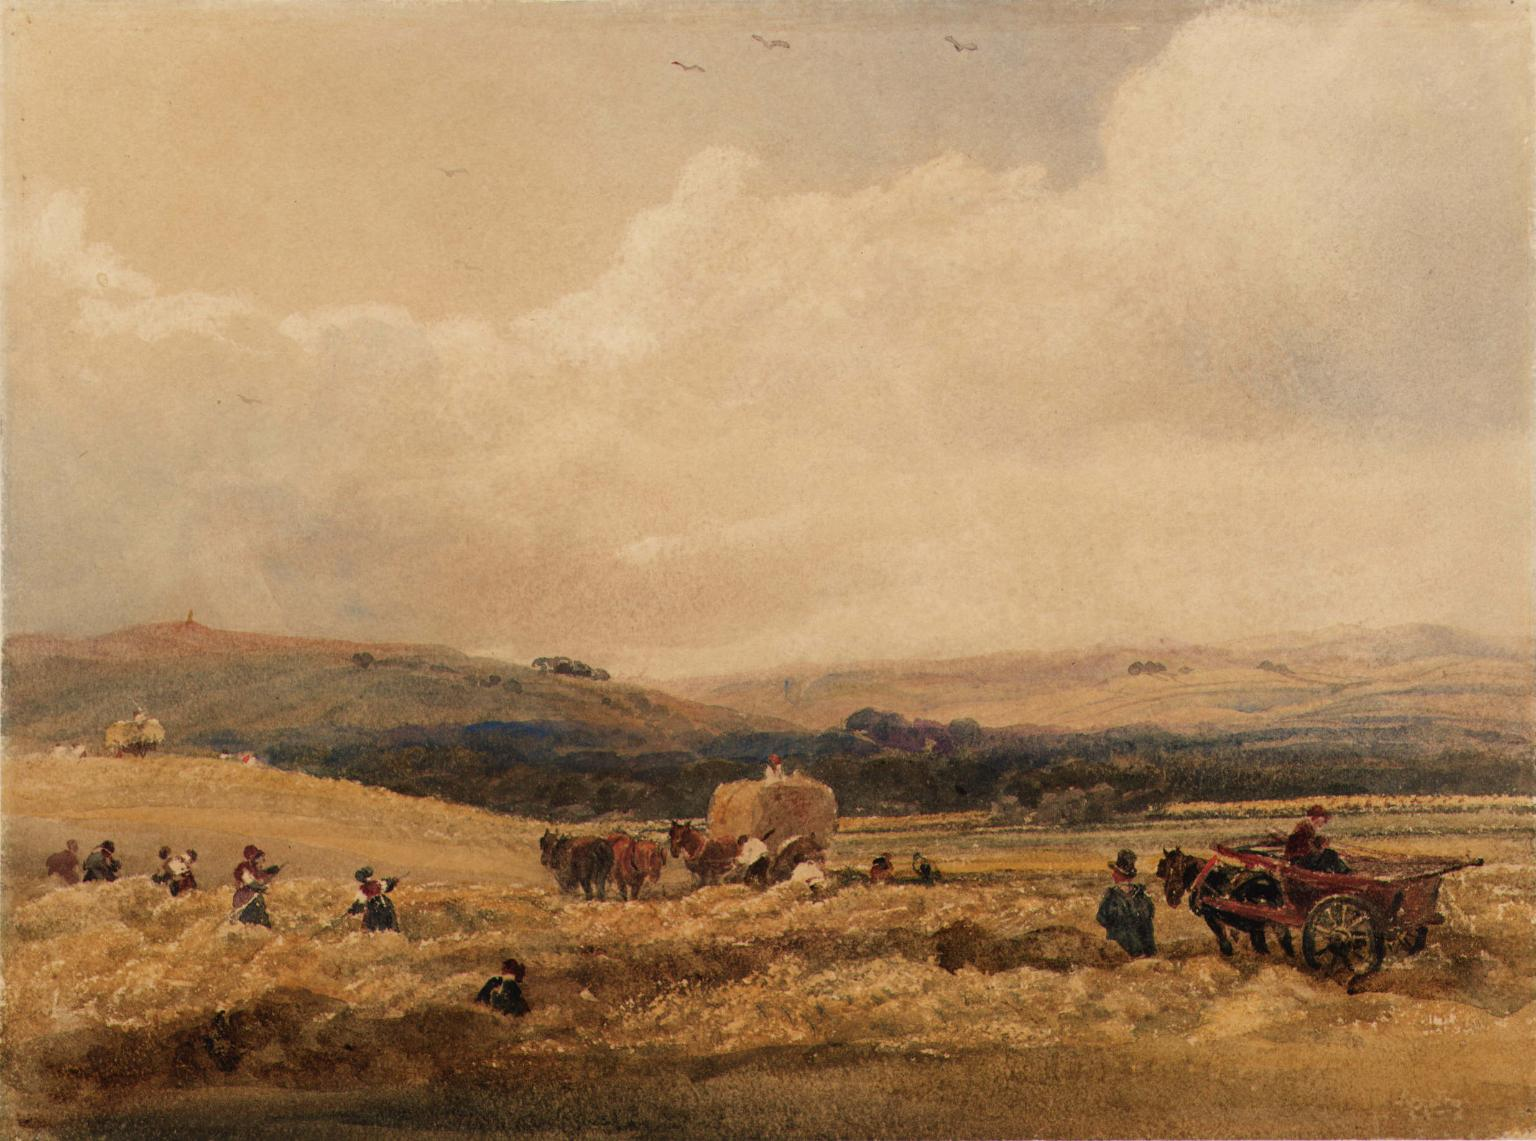 James worked as a farm boy during his early years and would have assisted his father with hay making. Artist: Peter De Wint. A Hayfield in Yorkshire. Tate (N03495) digital image © Tate released under Creative Commons CC-BY-NC-ND (3.0 Unported)